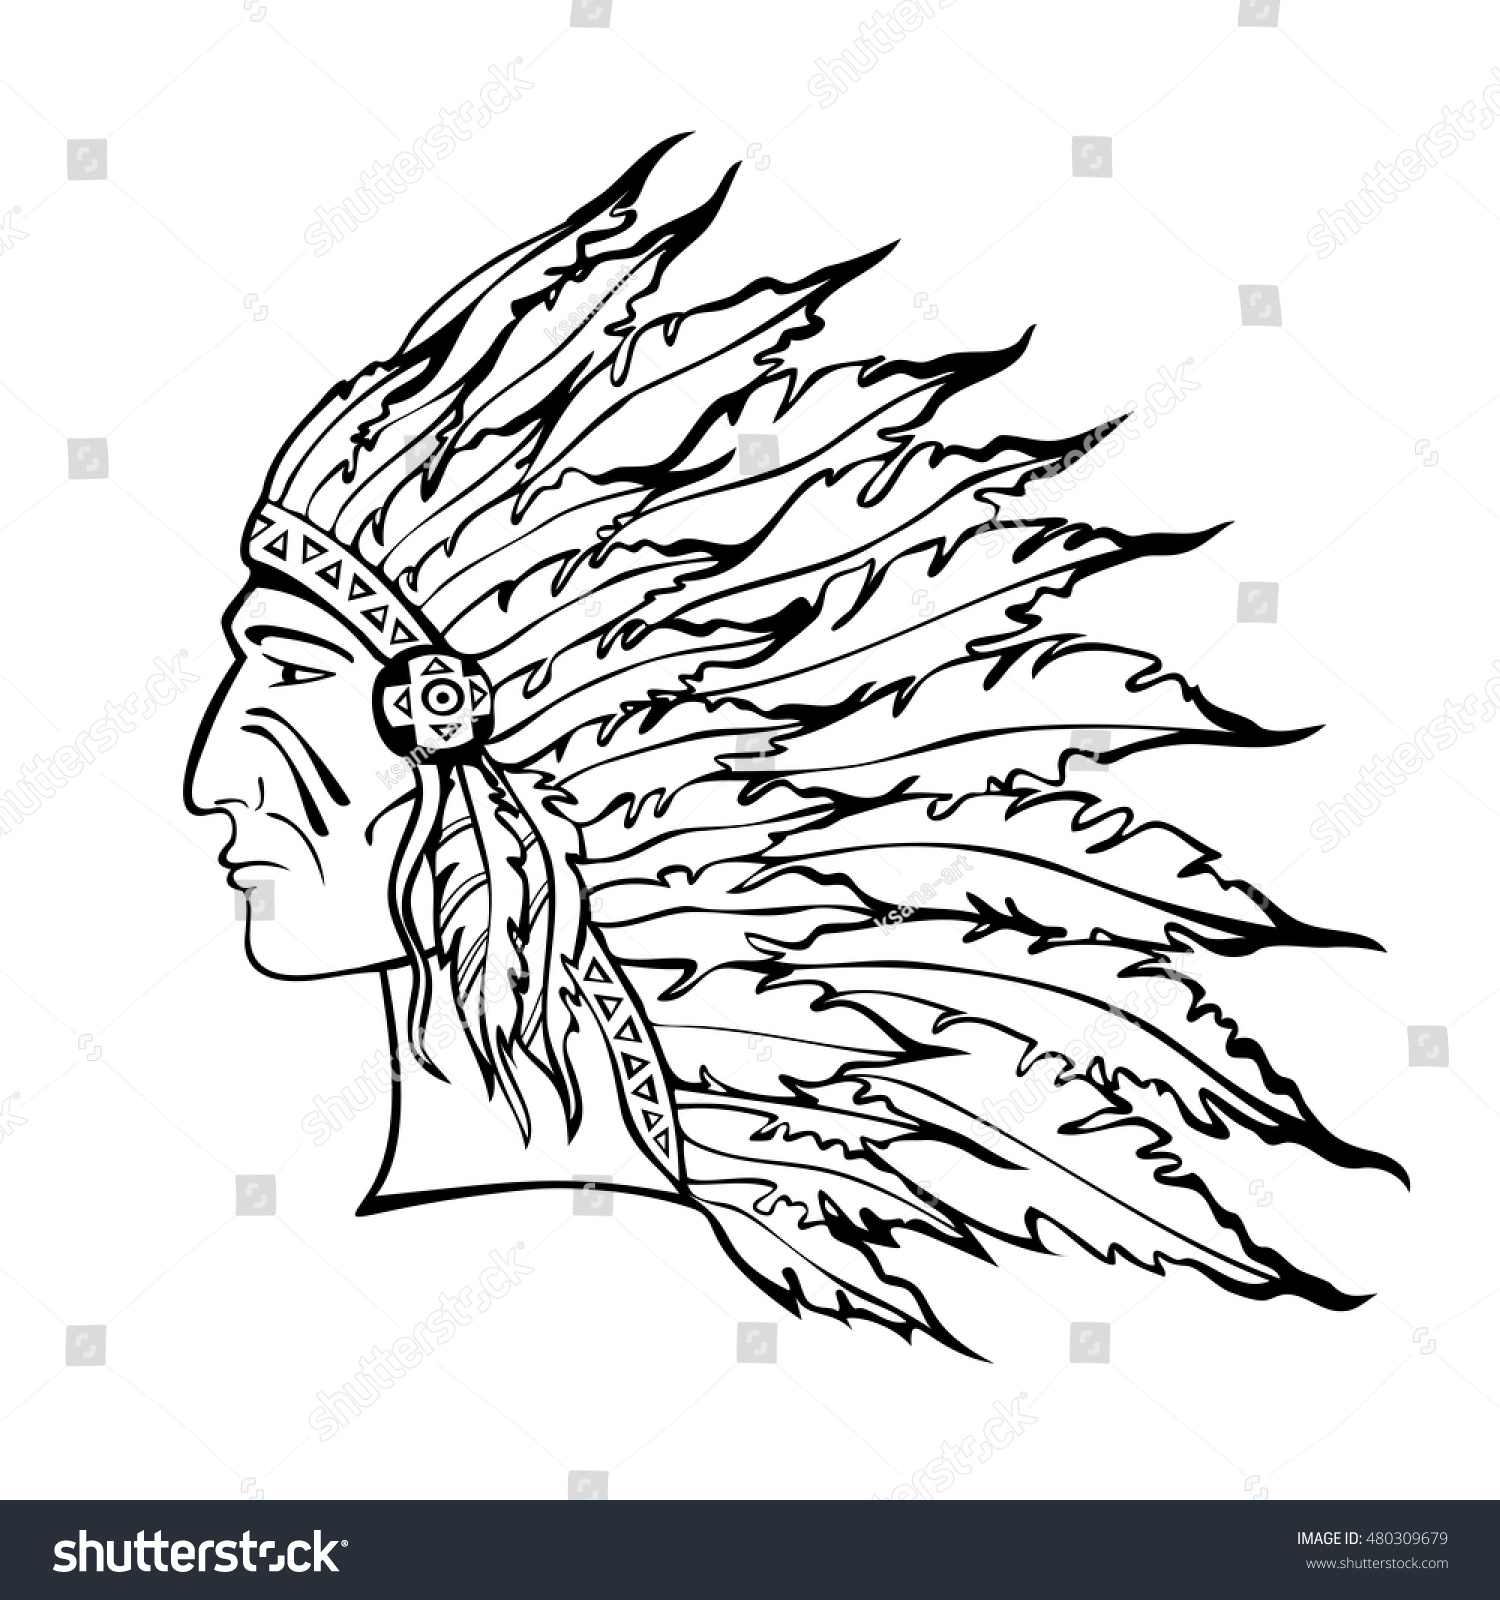 Native American Indian Chief In War Bonnet Hand Drawn Sketch Warrior Tribal Plume